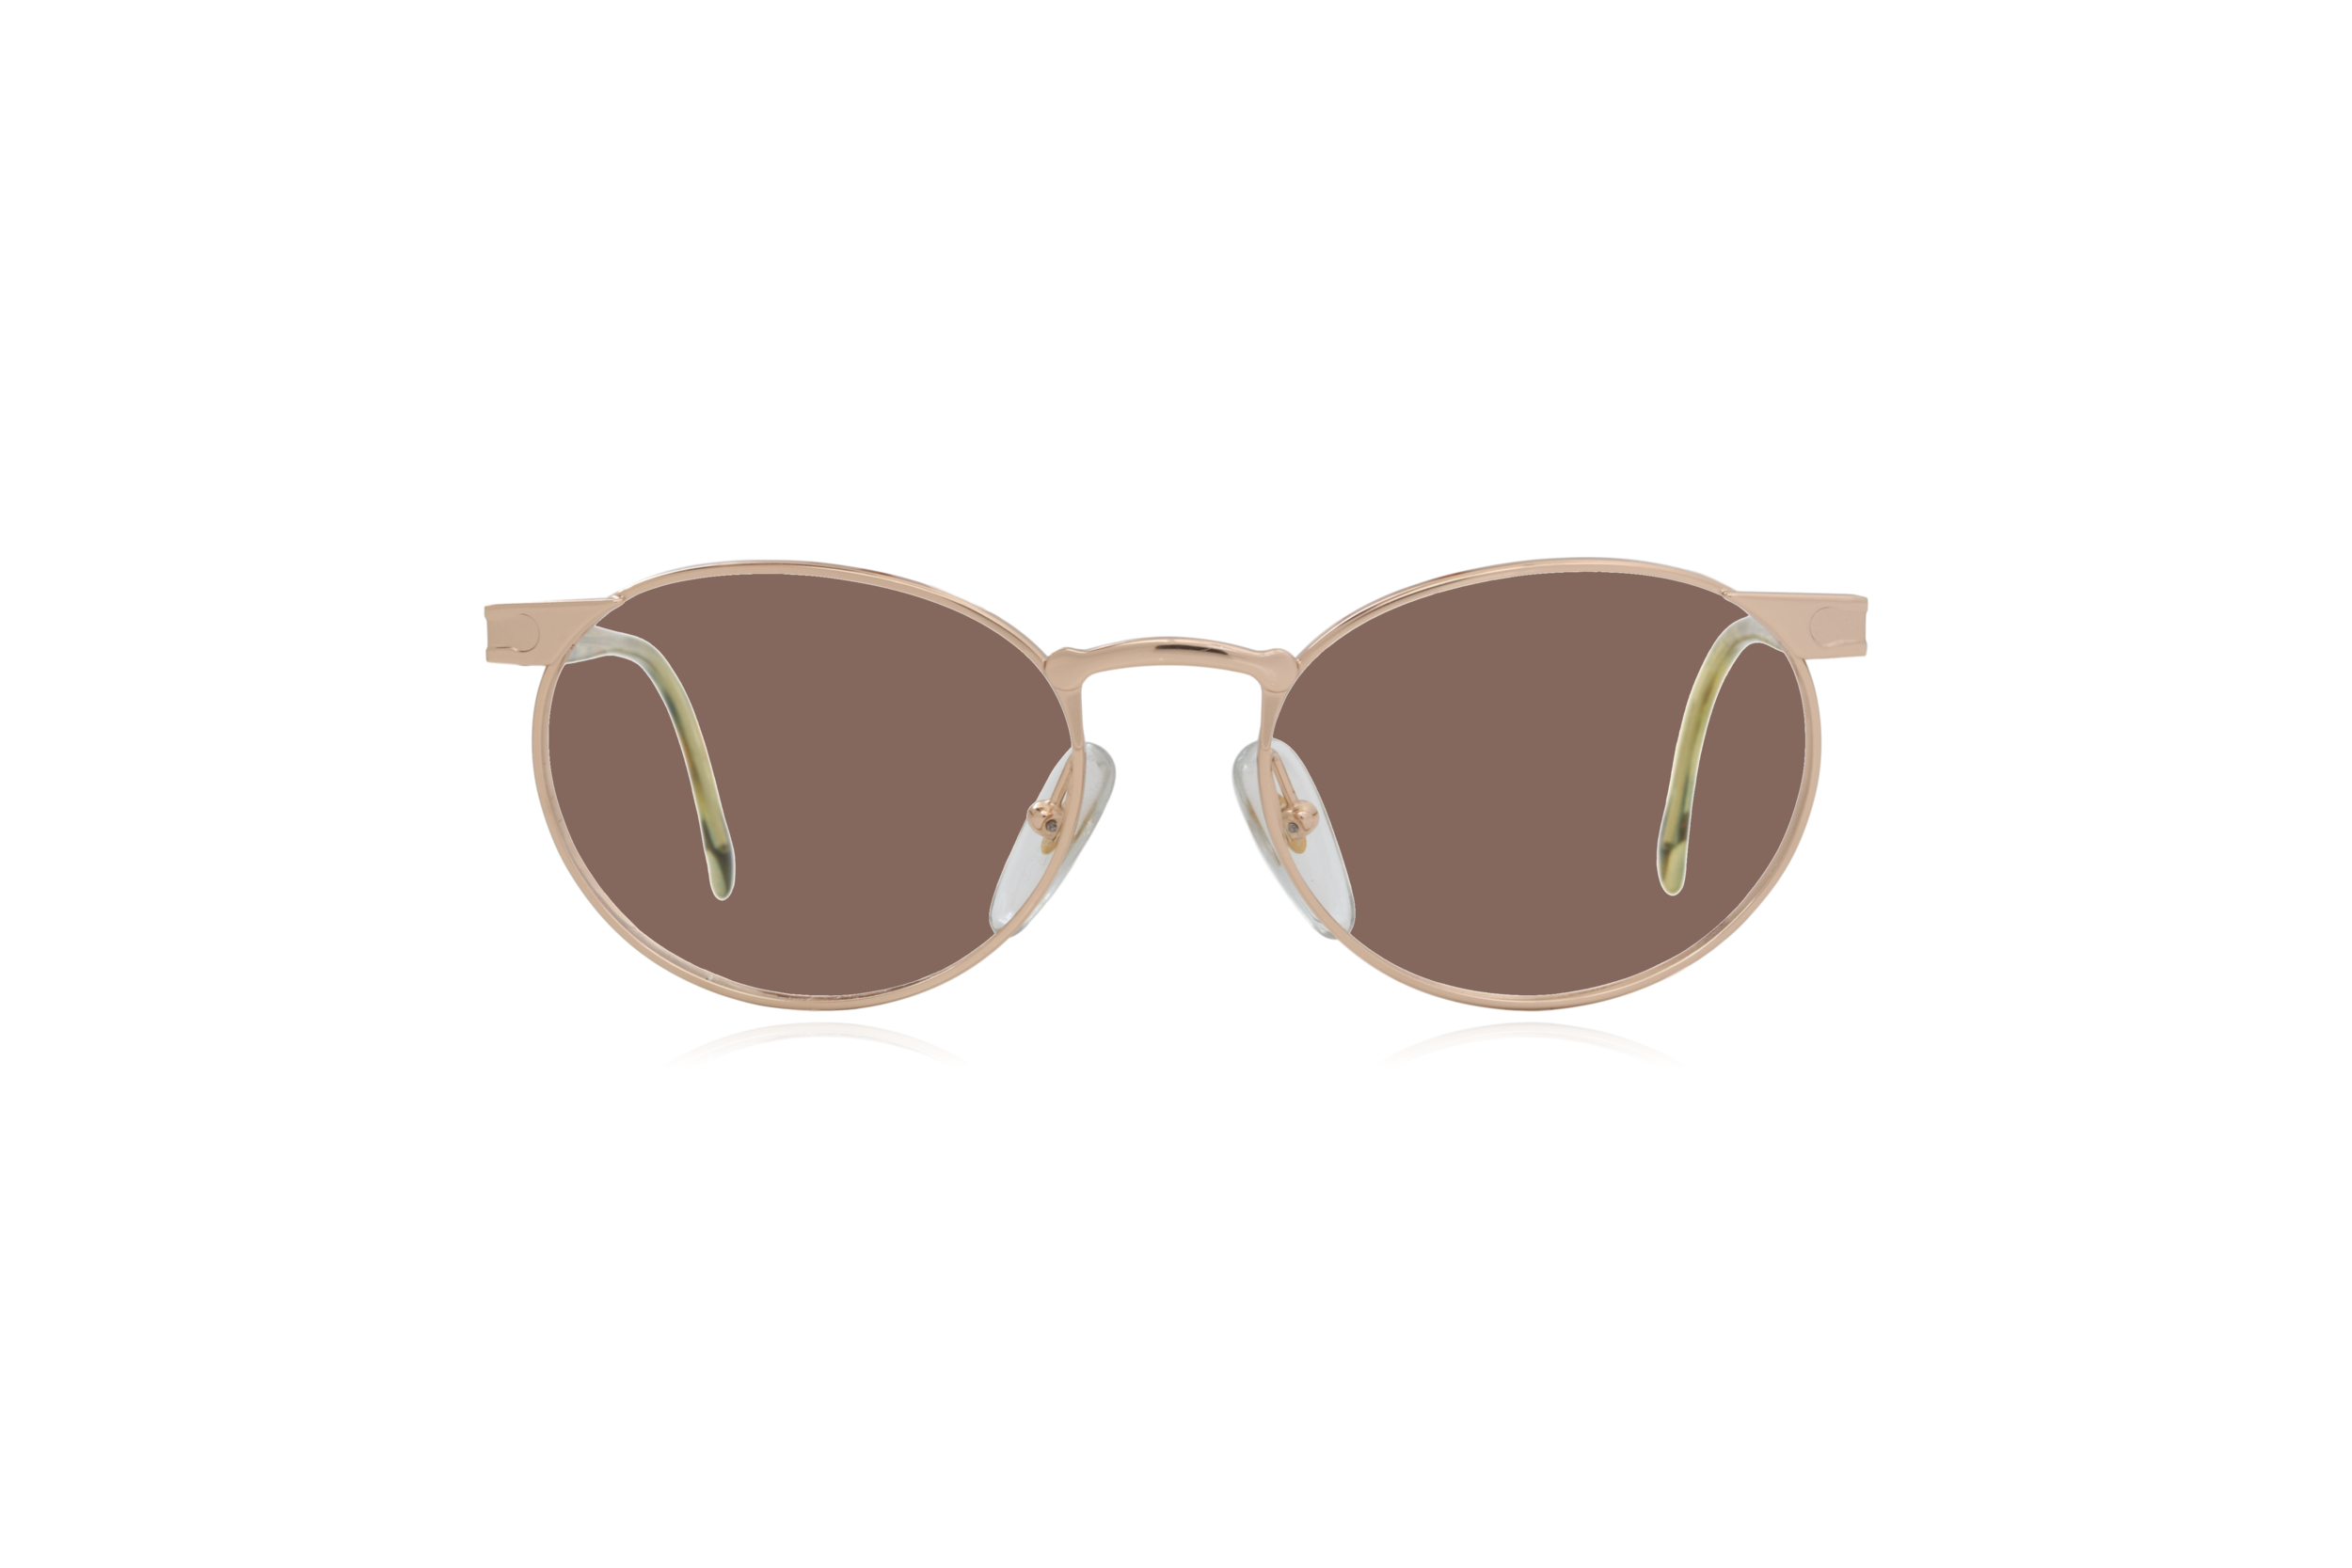 Peep Eyewear, Vintage Glasses, Hugo Boss 5131, Carrera, Brown Lenses.png